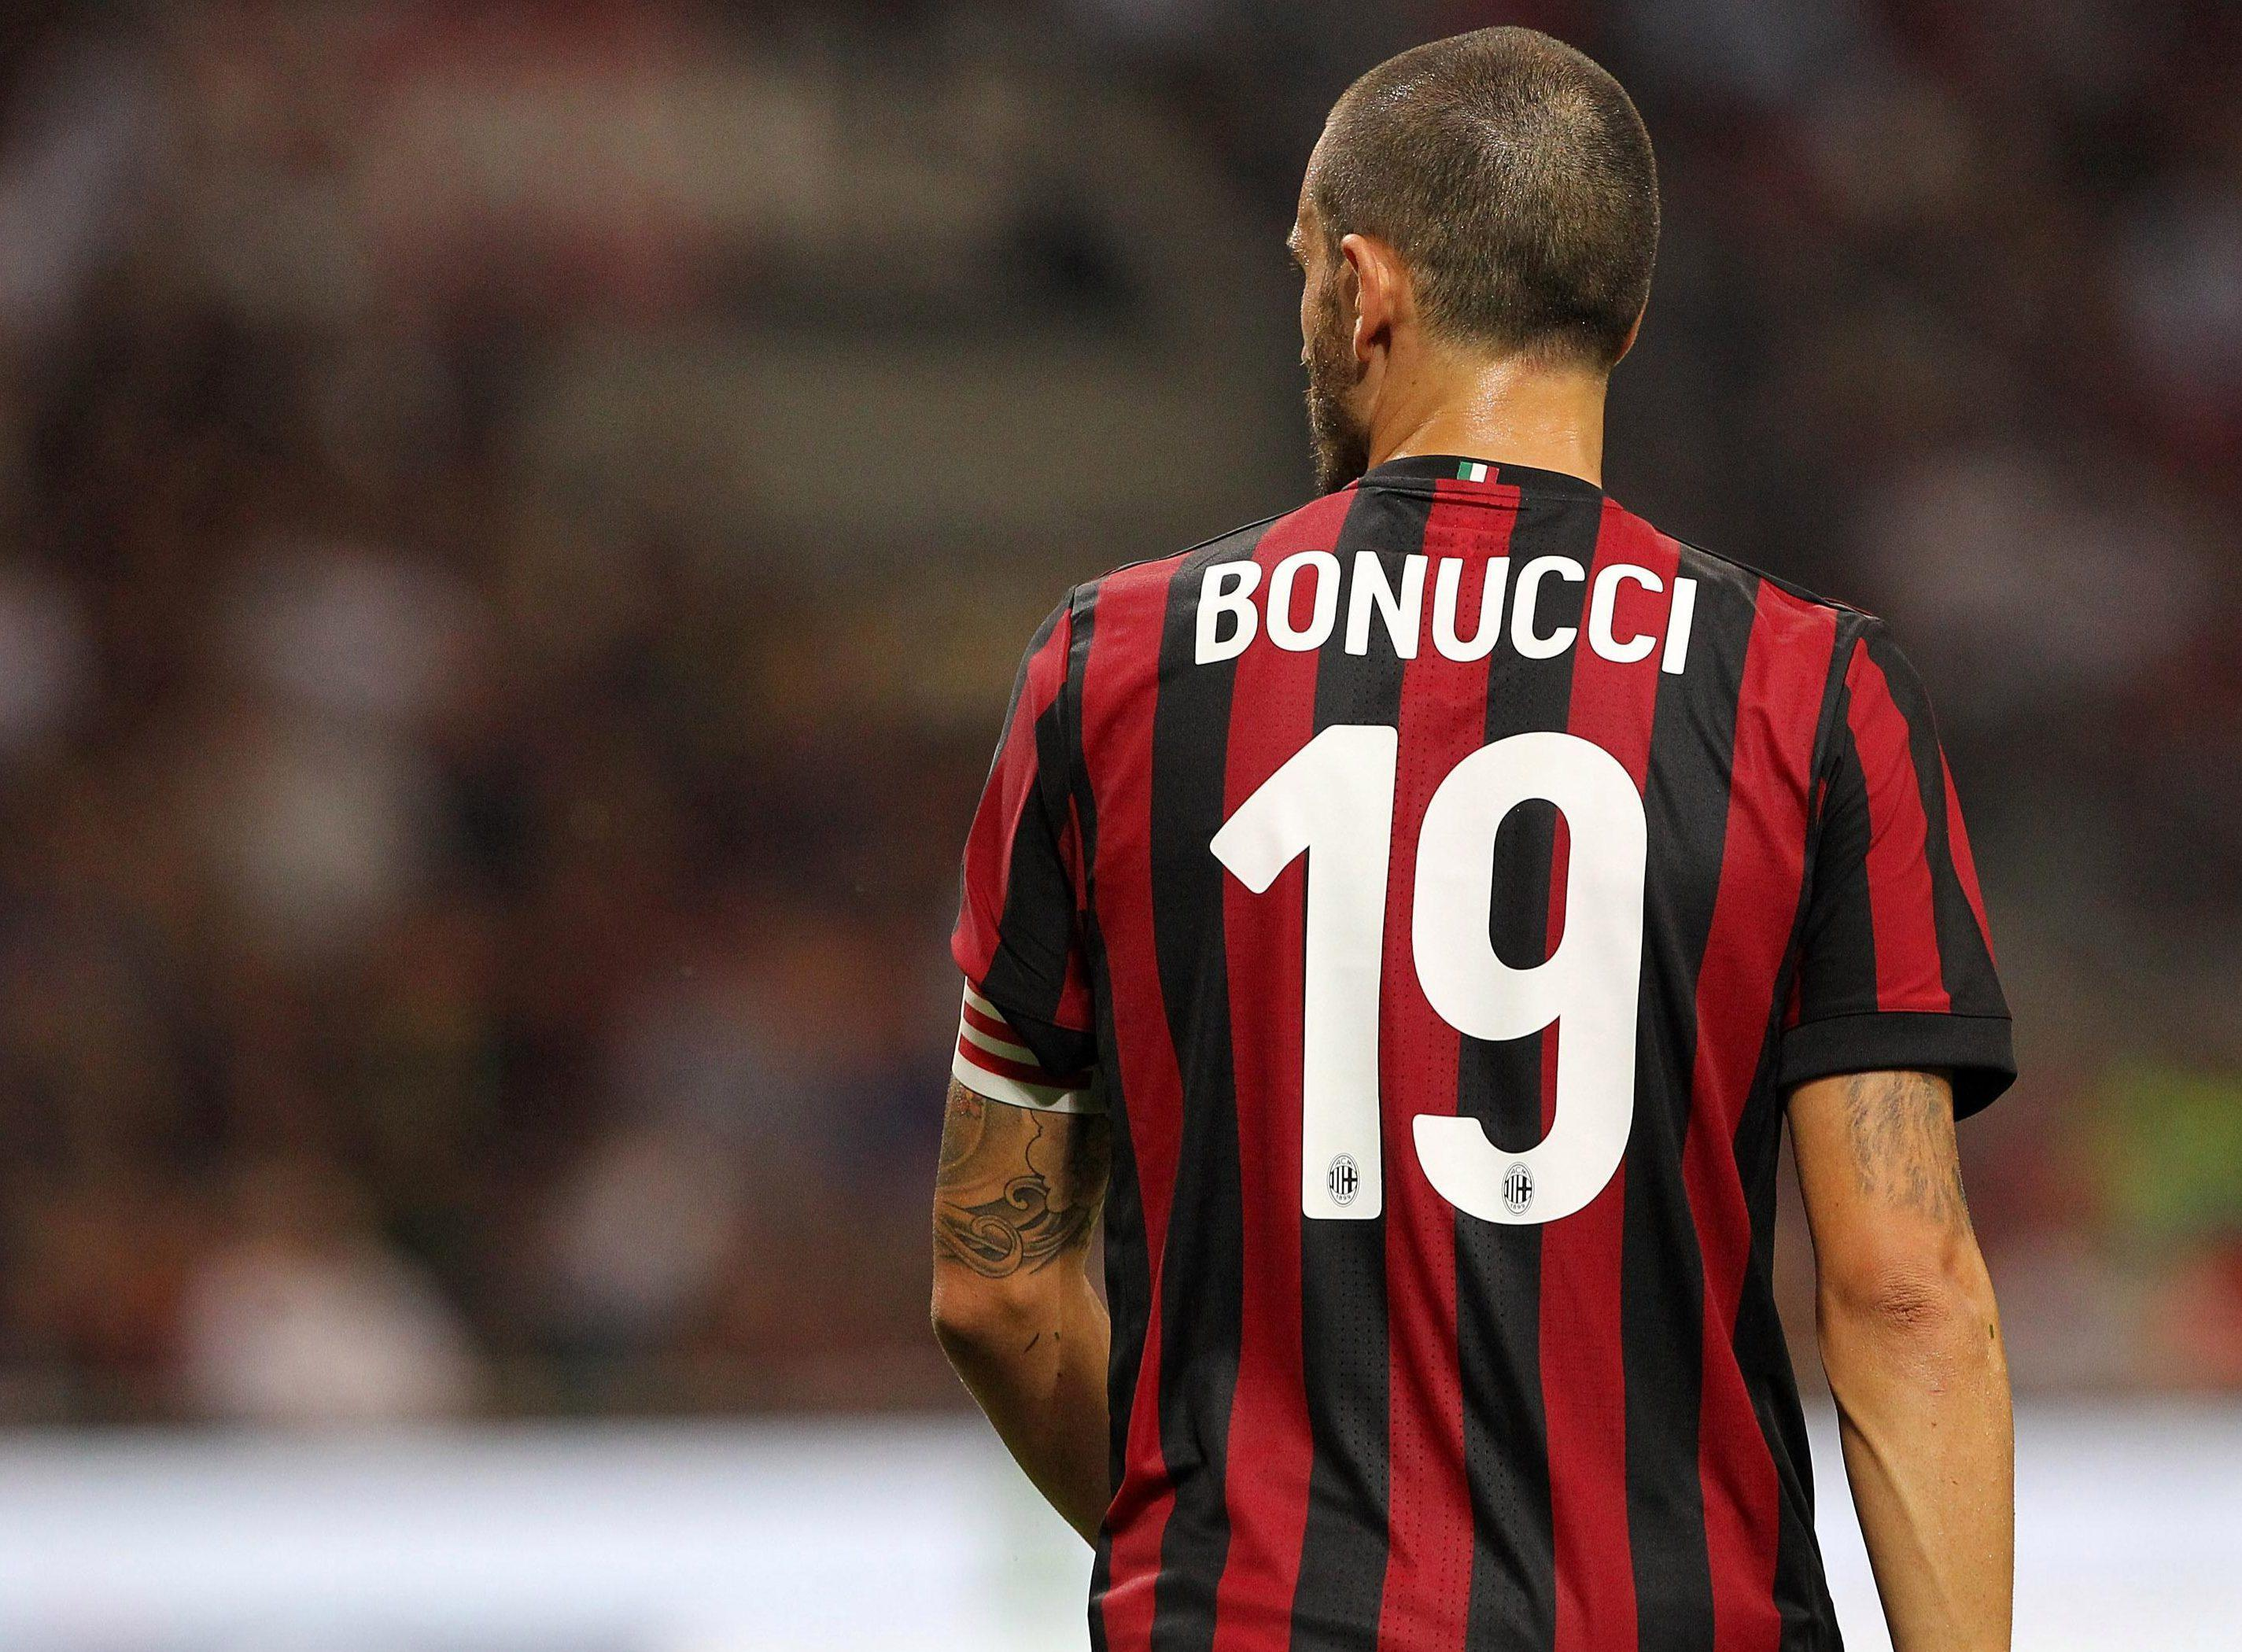 Juventus want a new centre-back to replace the departed Leonardo Bonucci